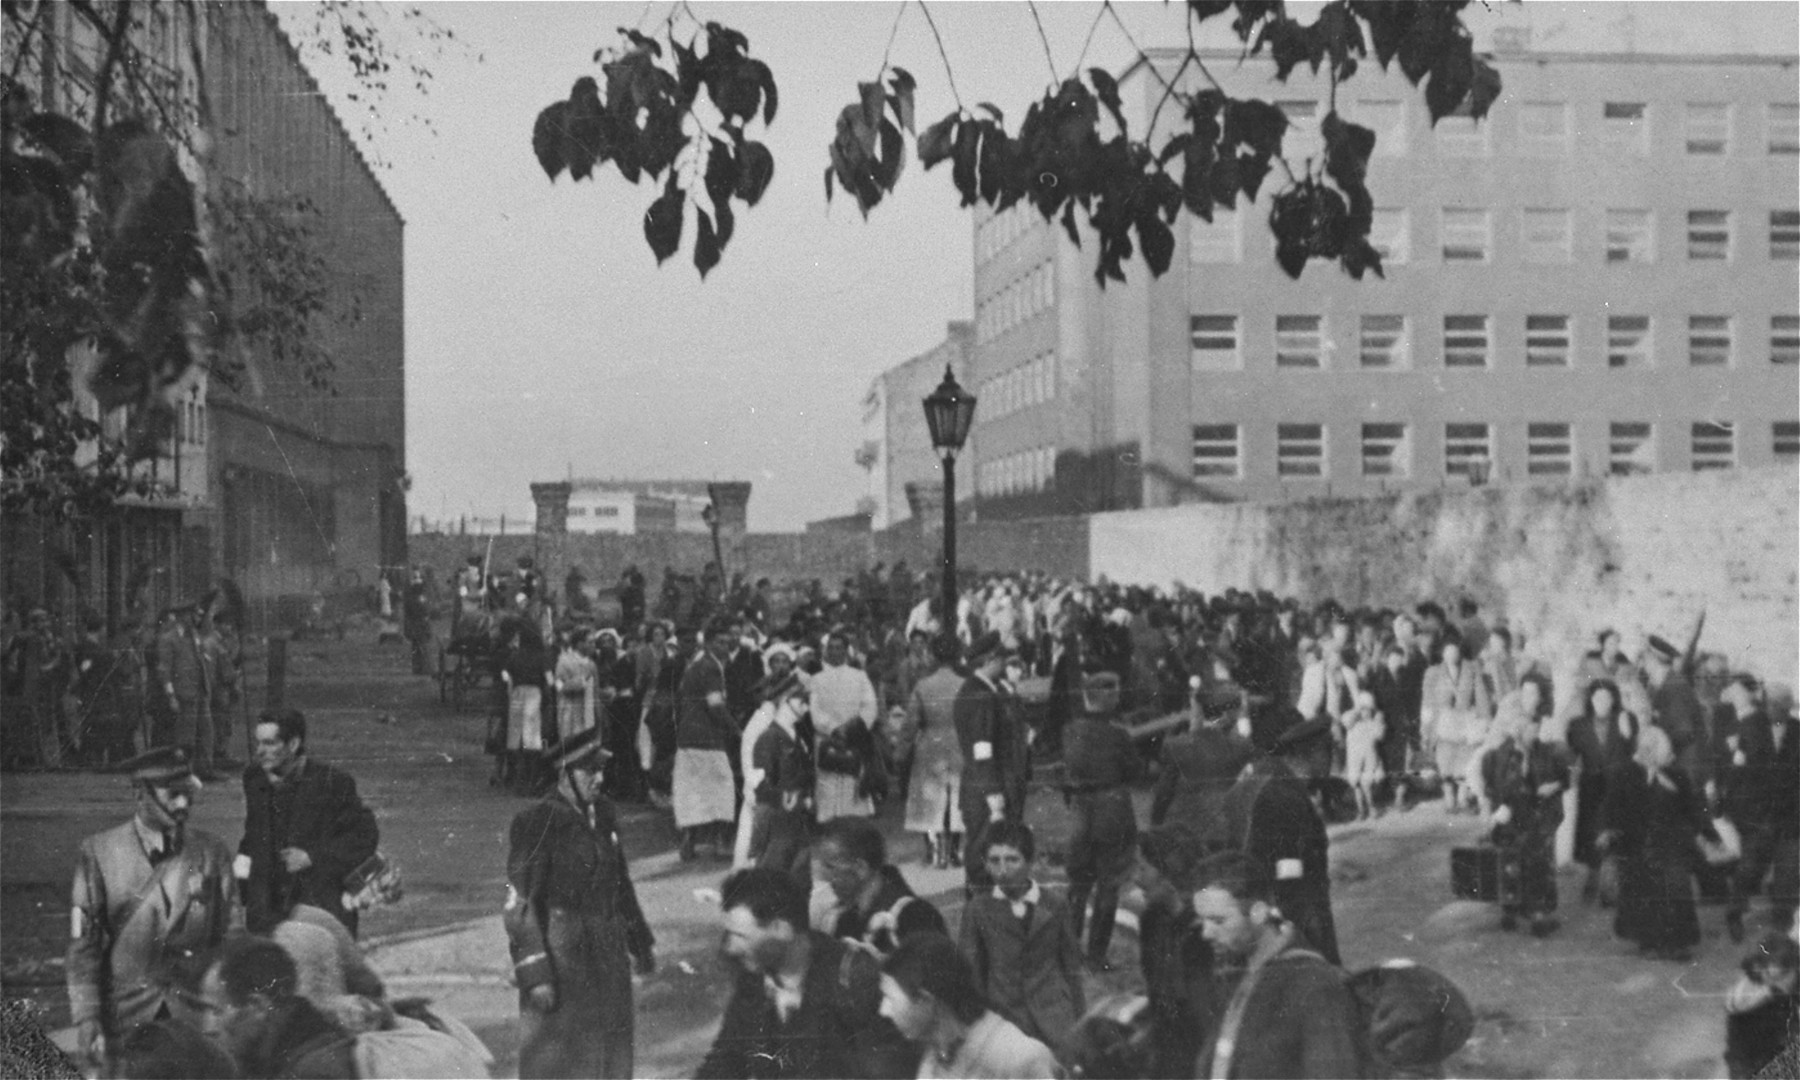 Jews are assembled for deportation at the Umschlagplatz in the Warsaw ghetto.